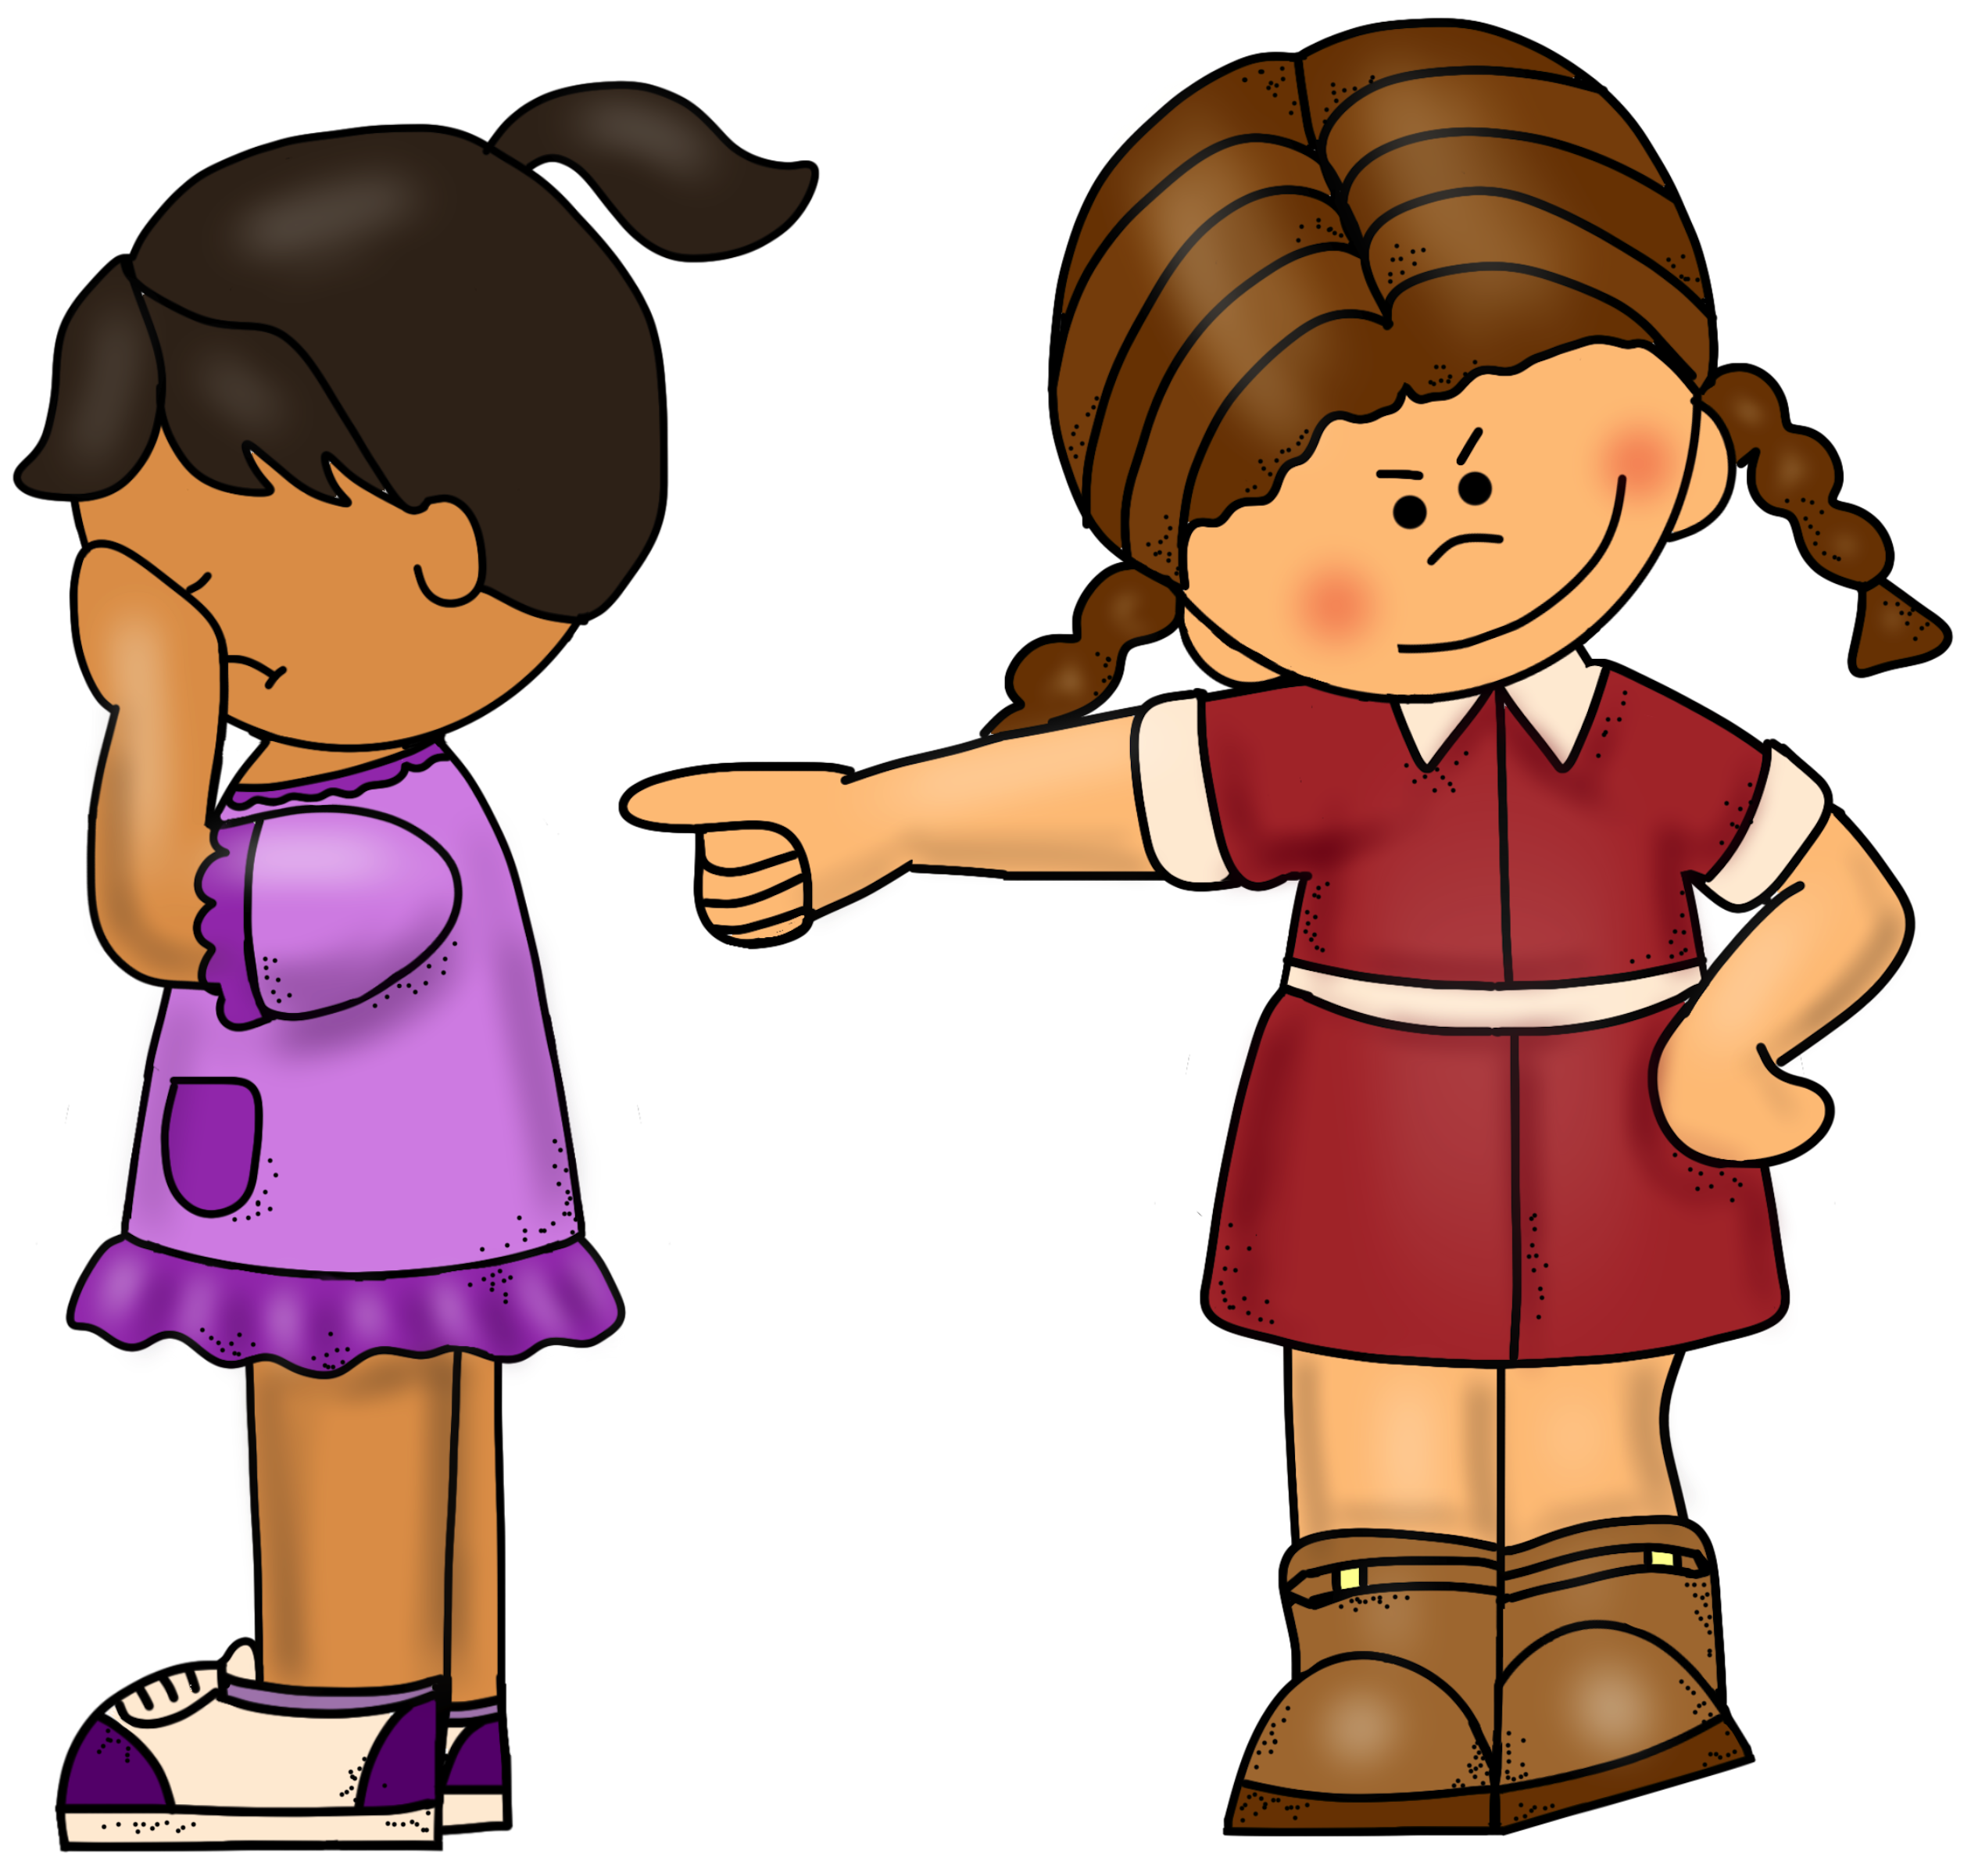 Bullying drawing kid. Bully clipart free download